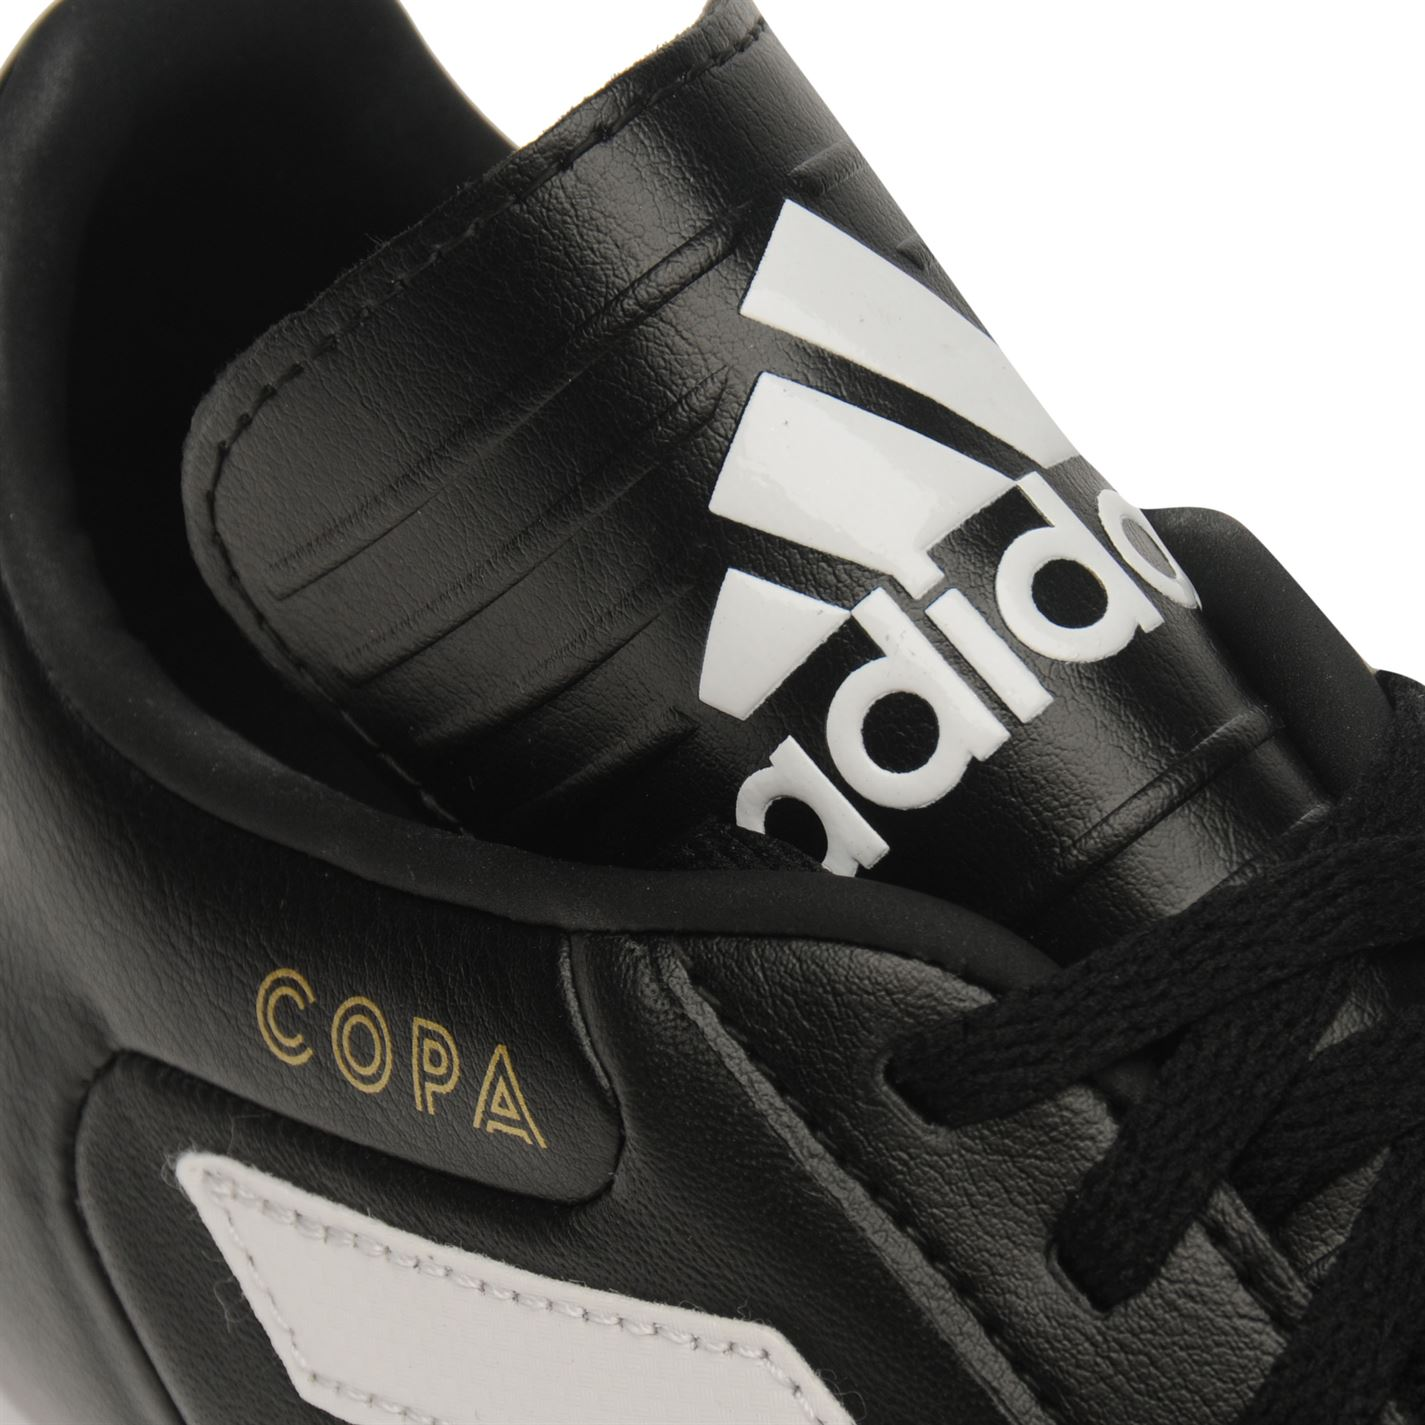 09964a2ad adidas Mens Copa Super Leather Trainers Sports Shoes Low Lace Up ...